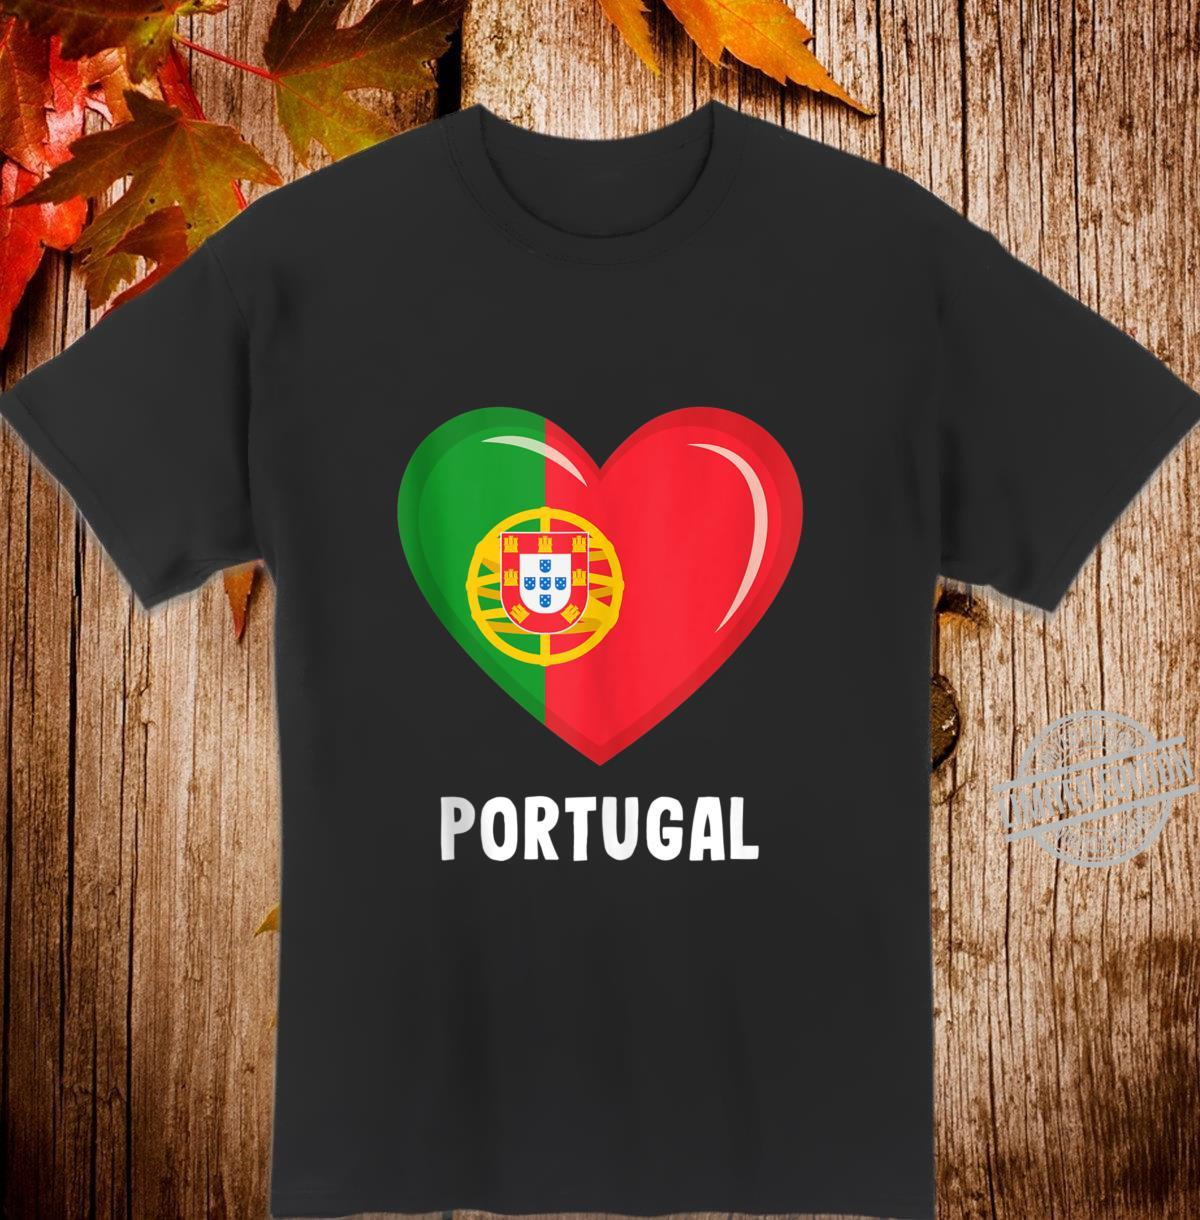 Portugal Flags Portuguese Shirt